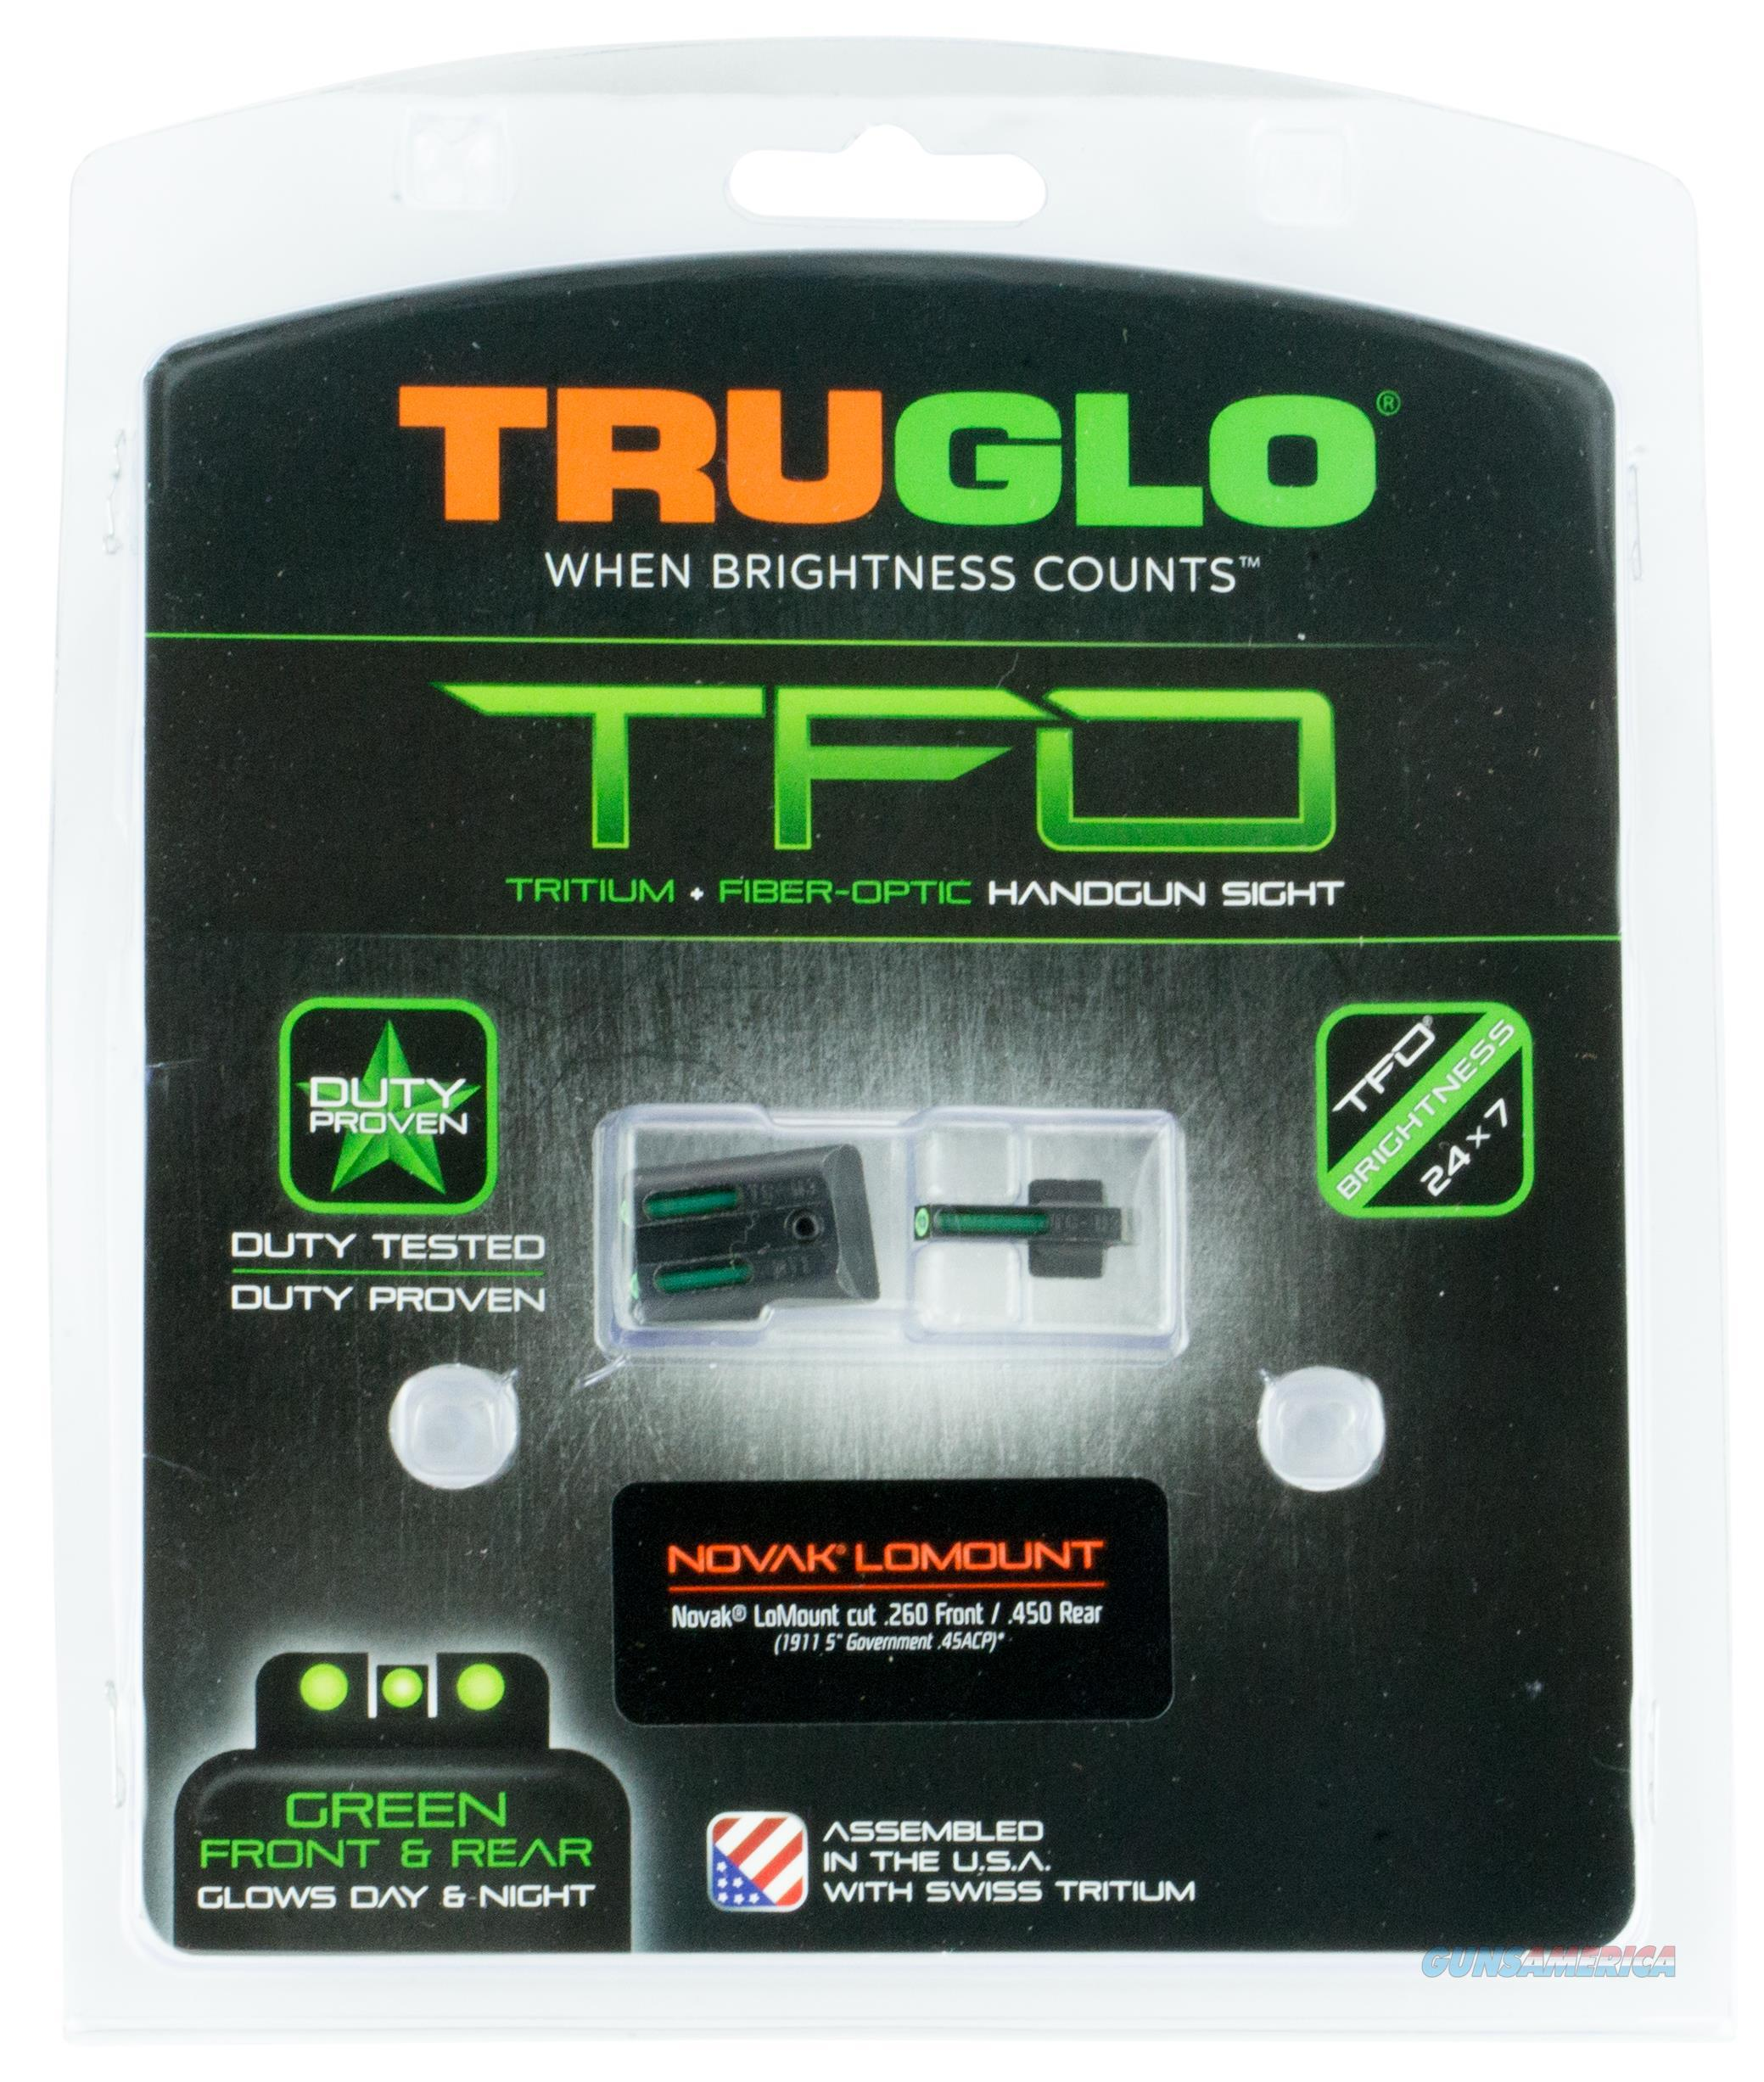 Truglo Tg131nti1 Tfo 1911 Govt 45 Acp W/Novak Lomount Fiber Optic Green TG131NT1  Non-Guns > Iron/Metal/Peep Sights